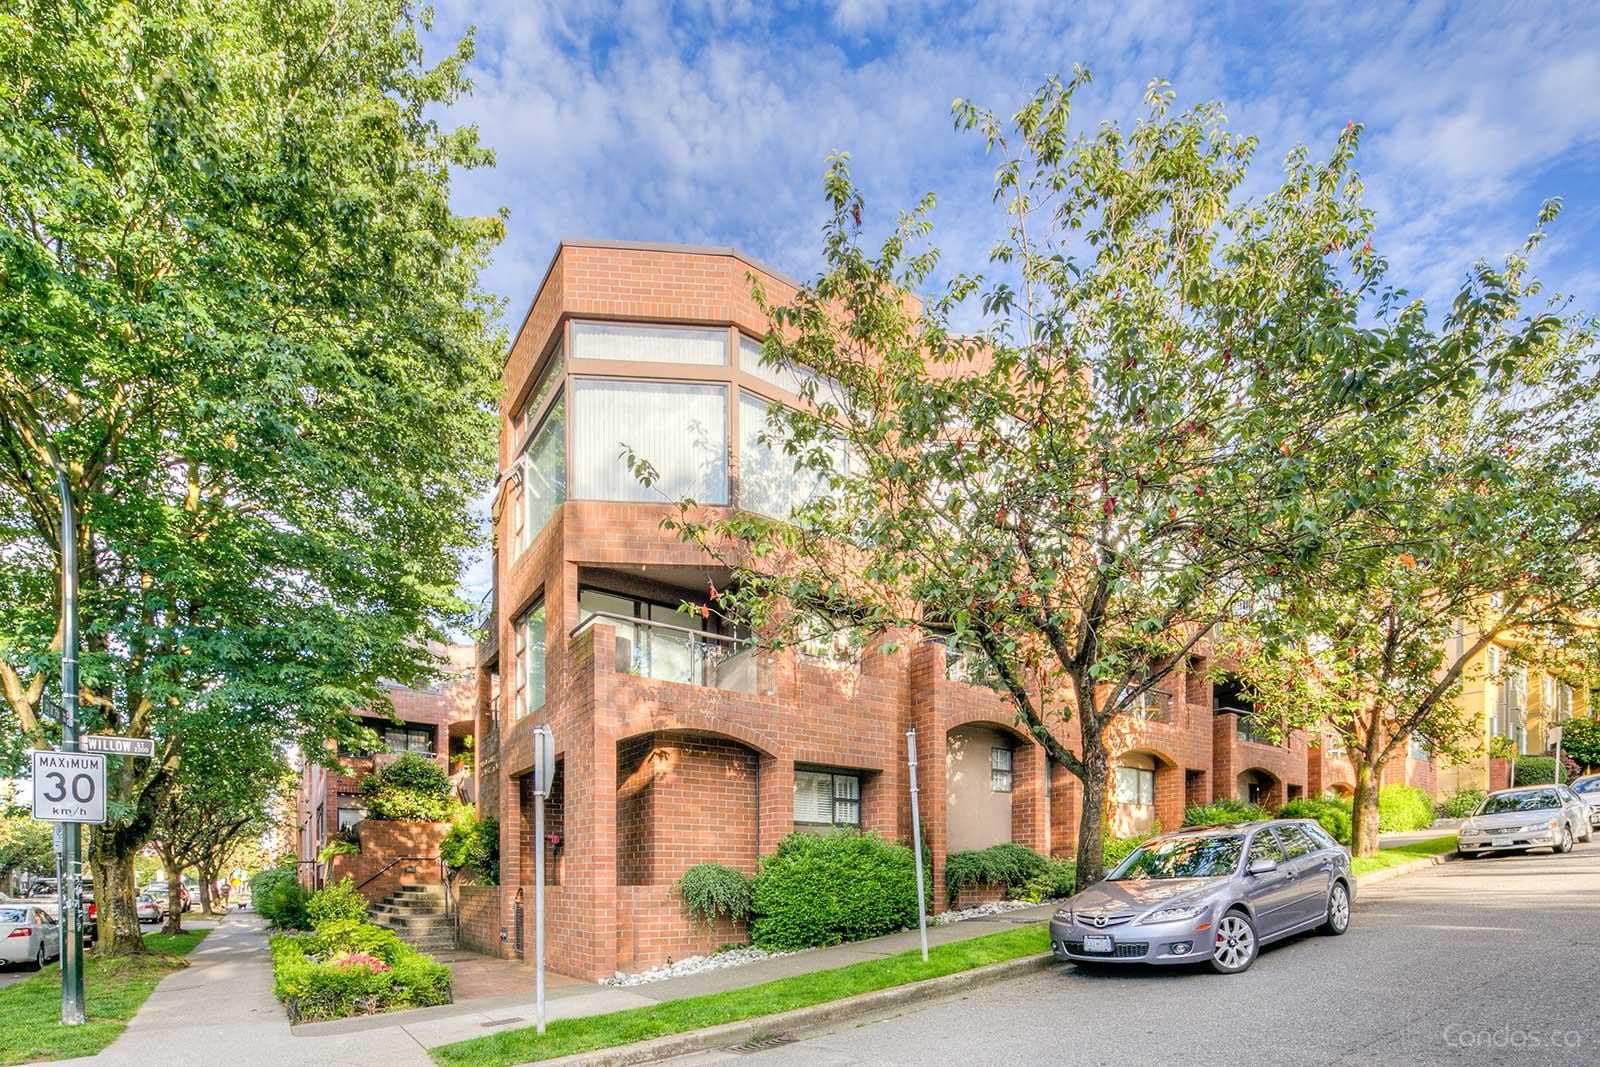 Willow Court at 766 W 7th Ave, Vancouver 1